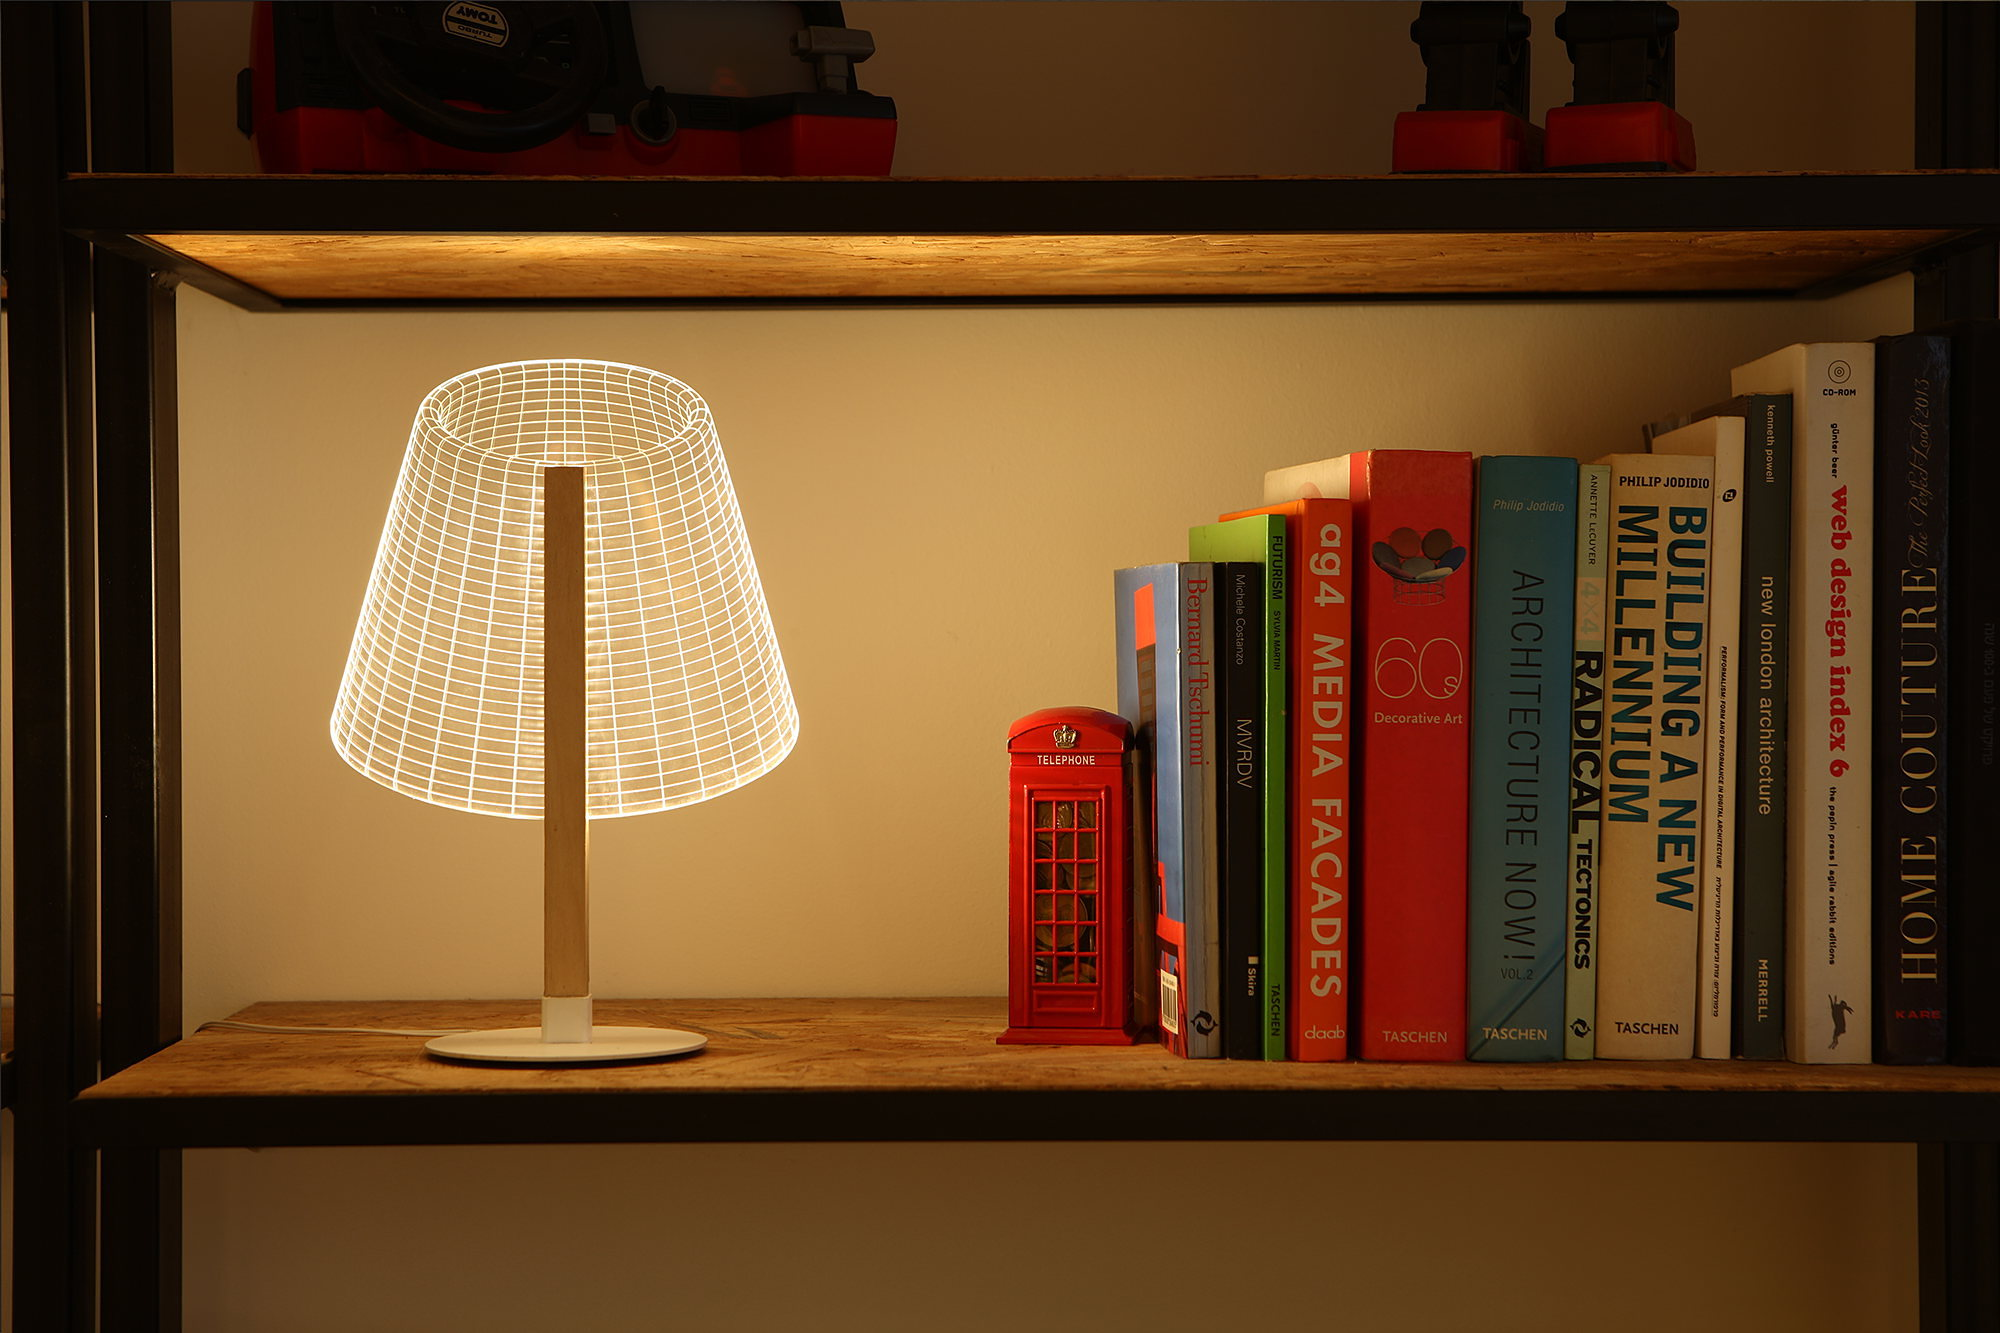 The new version of the Bulbing lamp with 3D-effect by Nir Chehanowski ClASSi 2